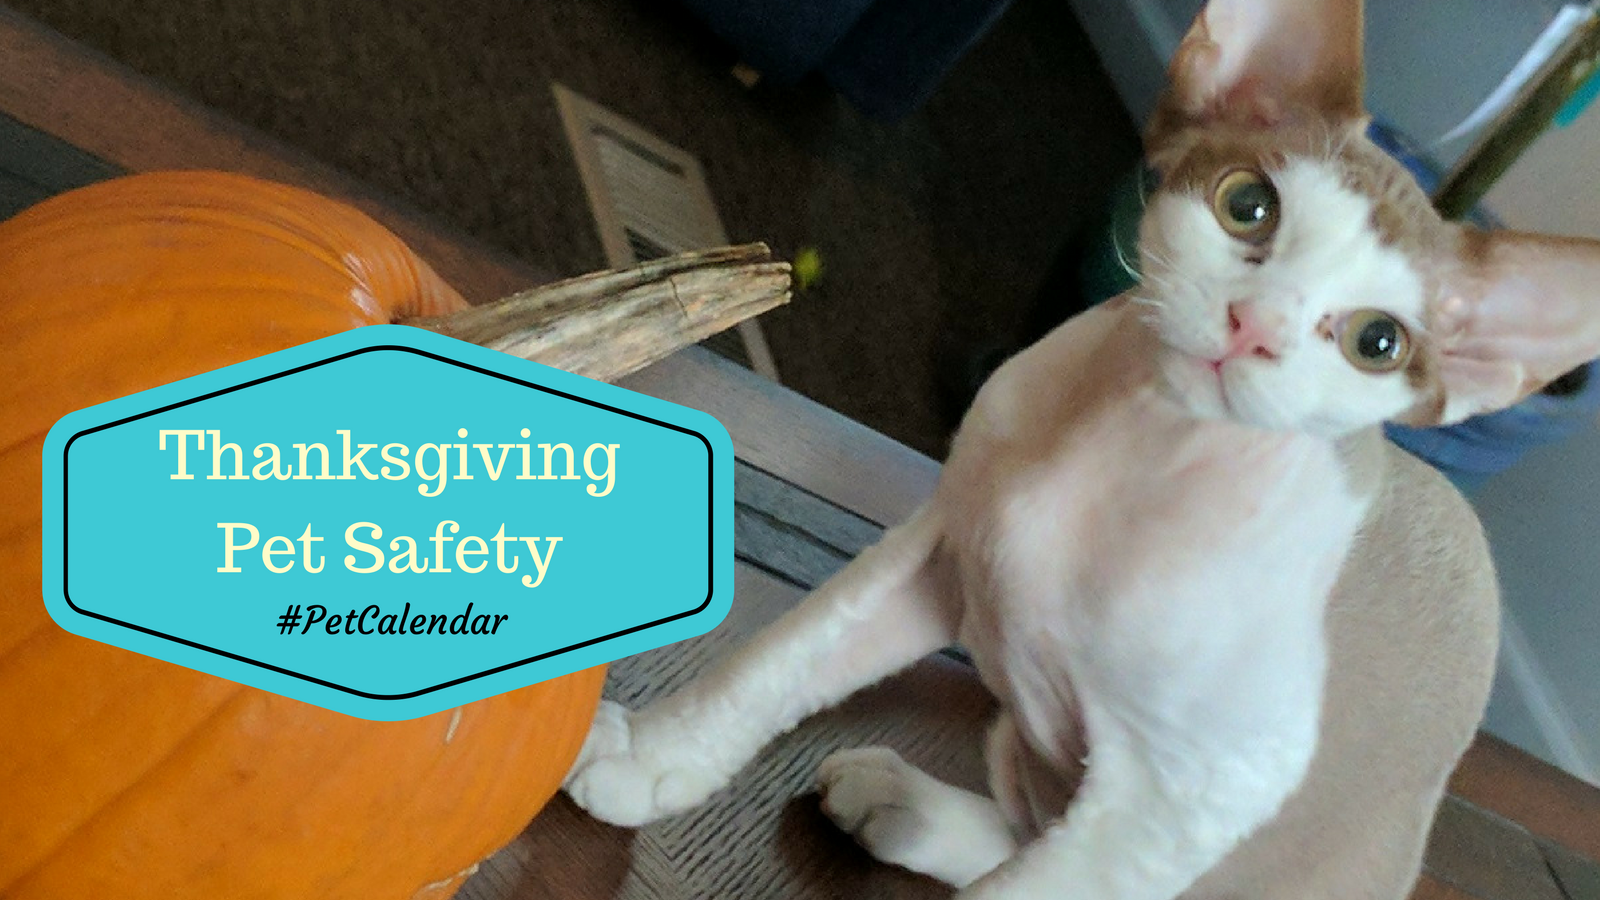 pet calendar thanksgiving pet safety